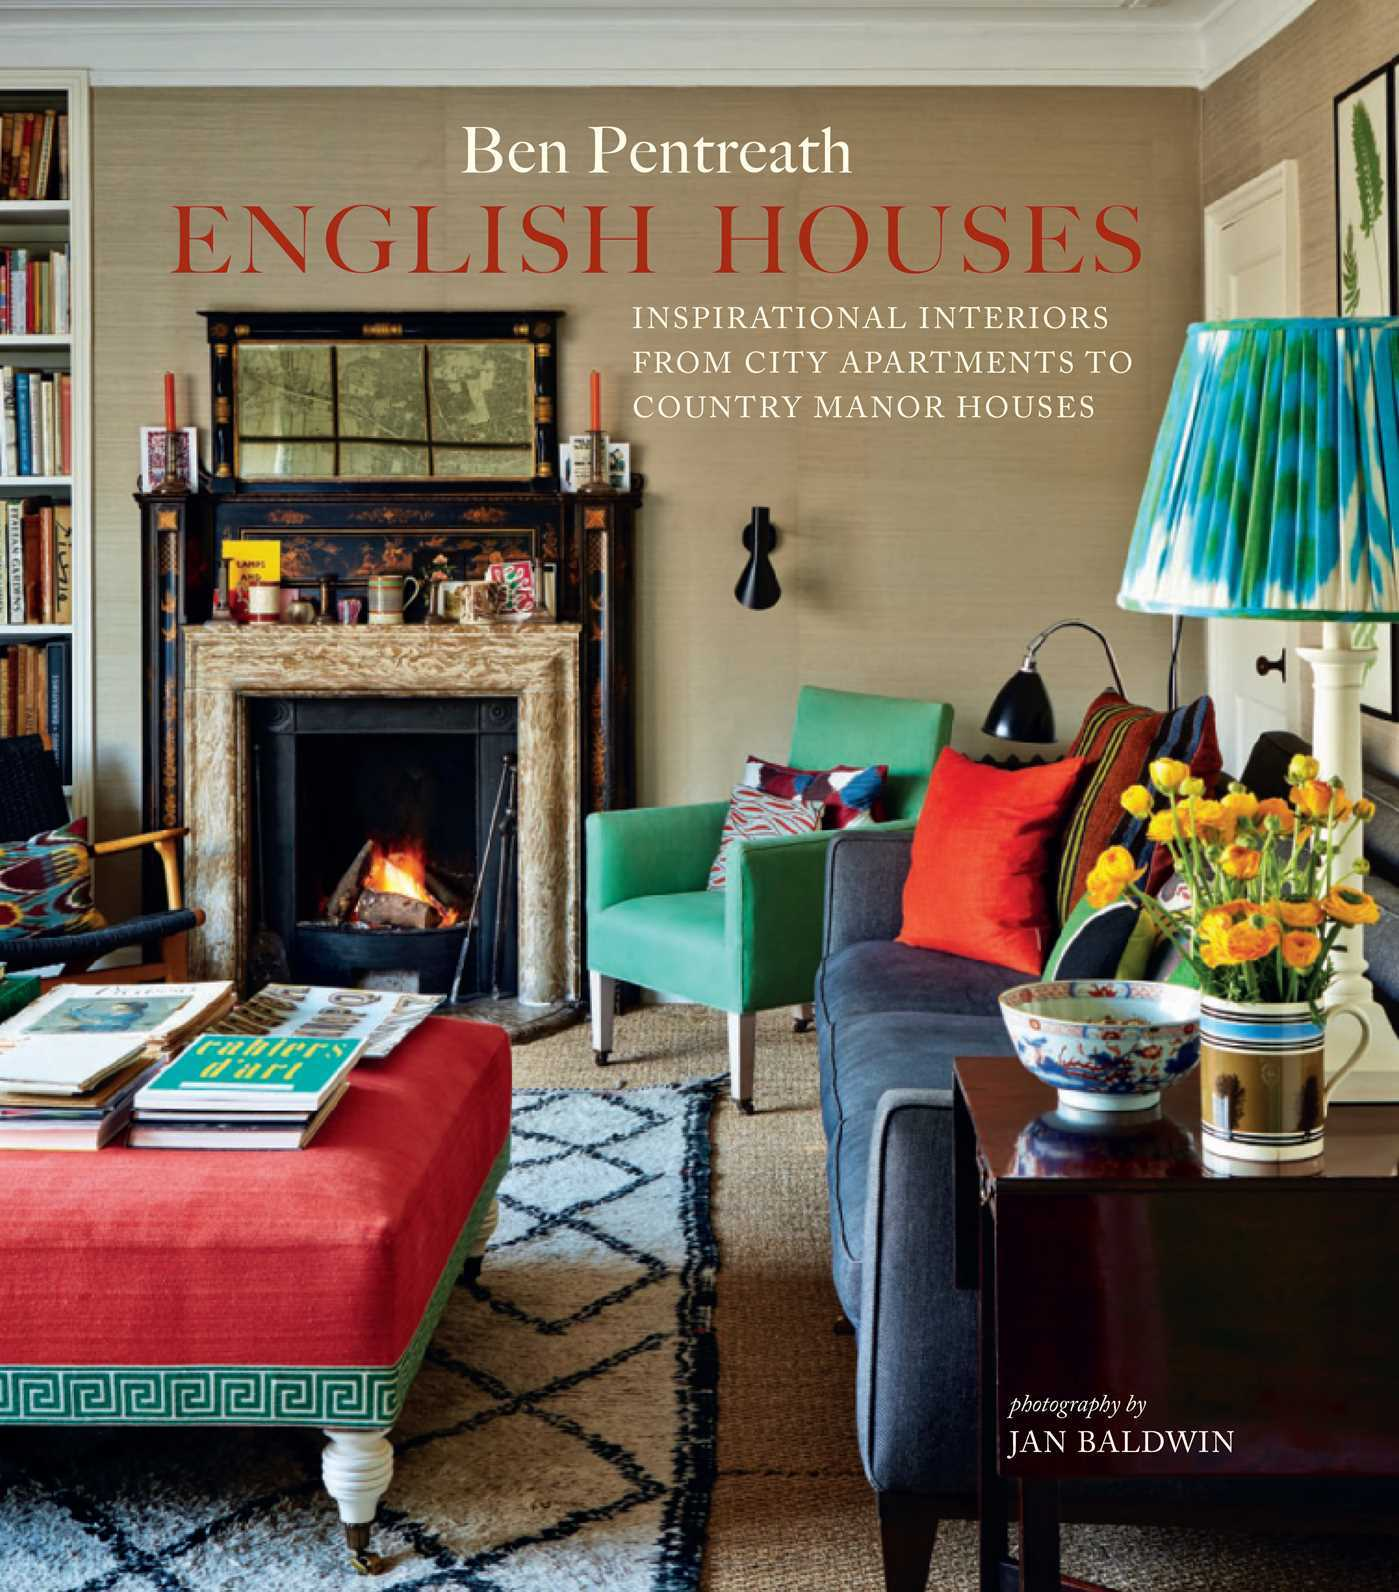 English Houses: Inspirational Interiors from City Apartments to Country Manor Houses